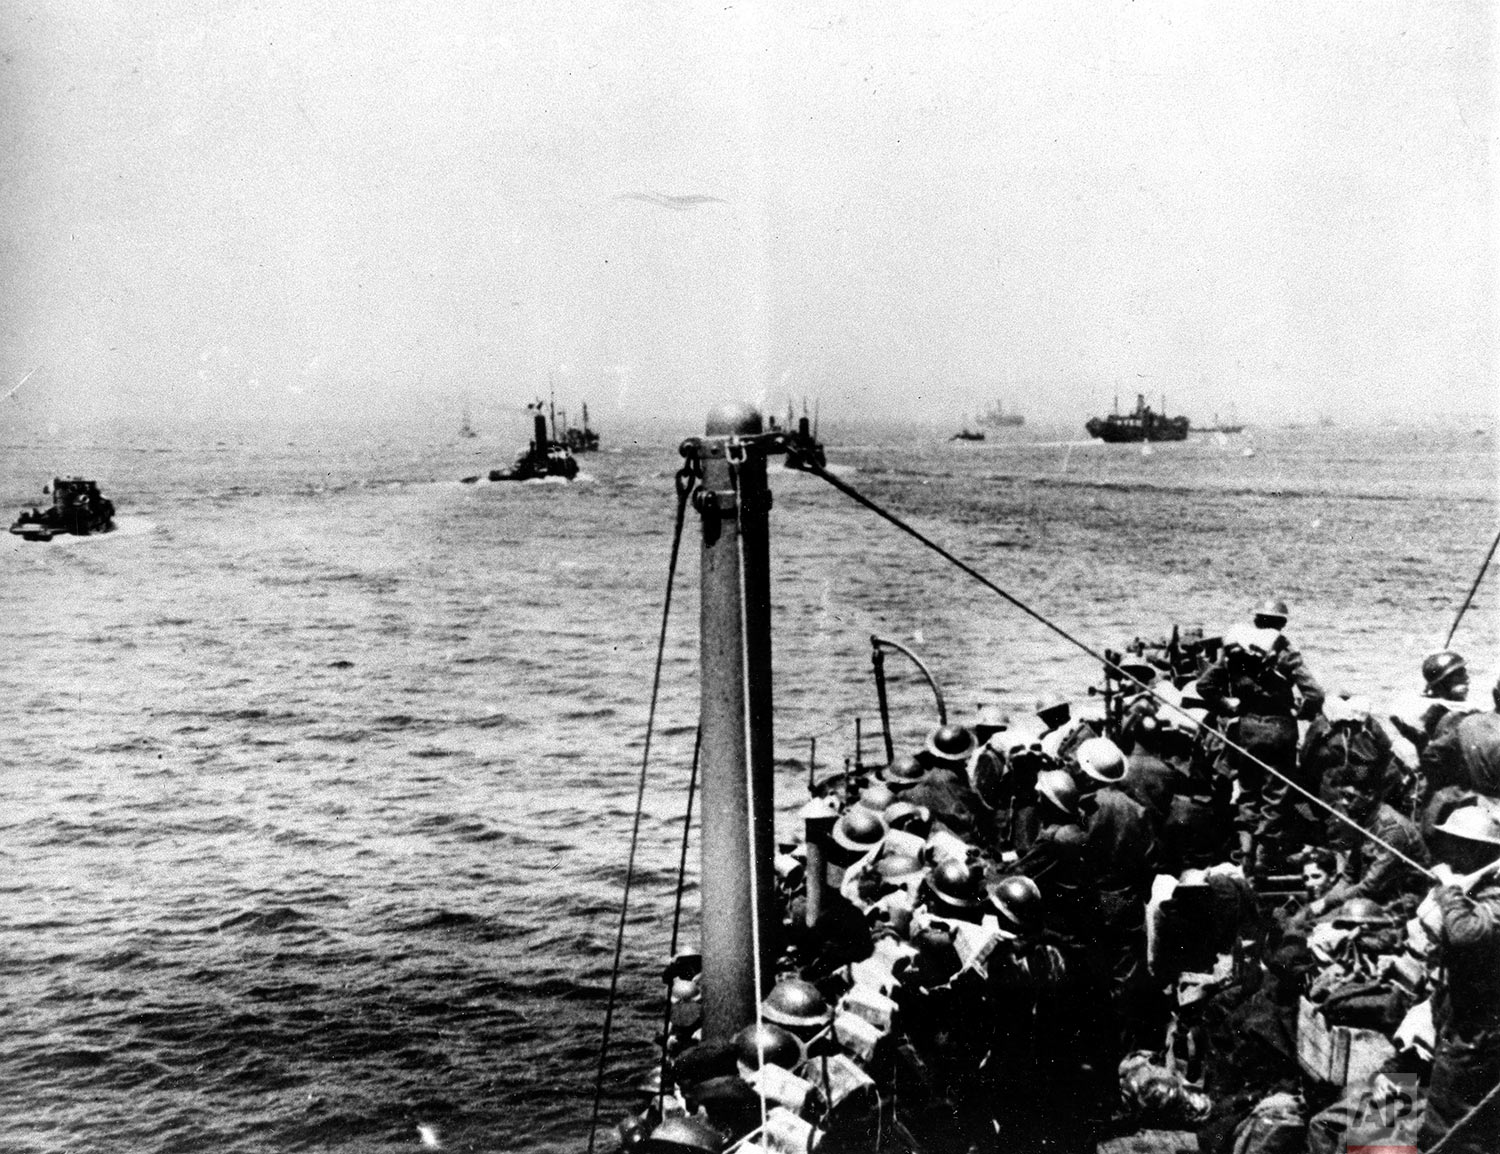 Some of the many ships carrying Allied forces across the English Channel from Dunkirk, France, between May 29 and June 3, 1940, are shown en route for England during the successful Operation Dynamo in World War II.  Over three-hundred thousand French, British and Belgian troops escaped the German invasion from the beaches near Dunkirk.  (AP Photo)